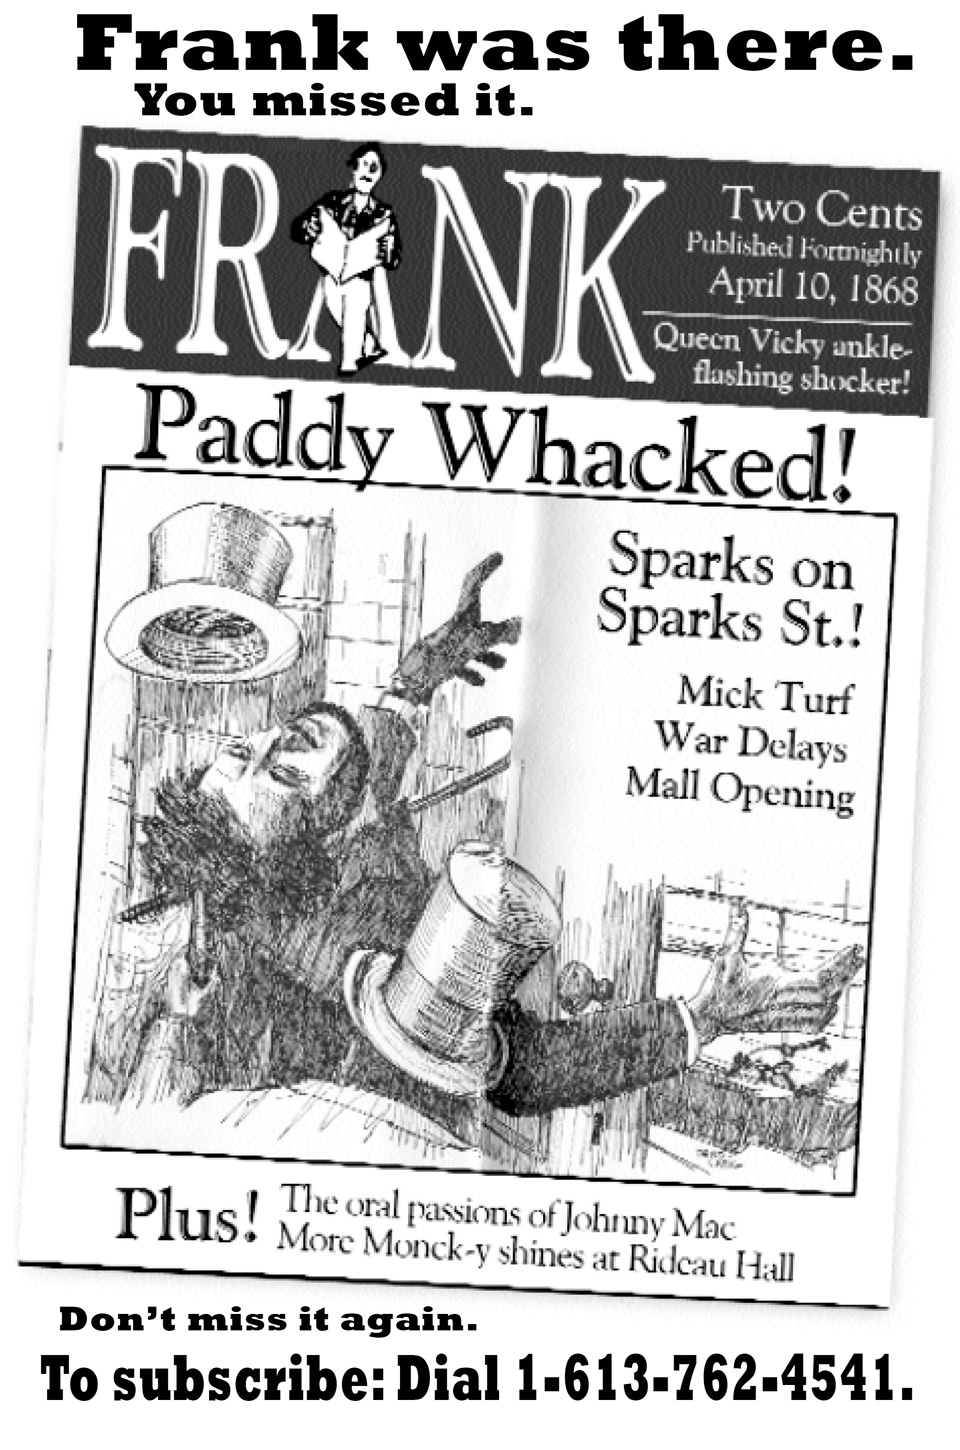 Frank of Ages - Paddy Whacked Promo